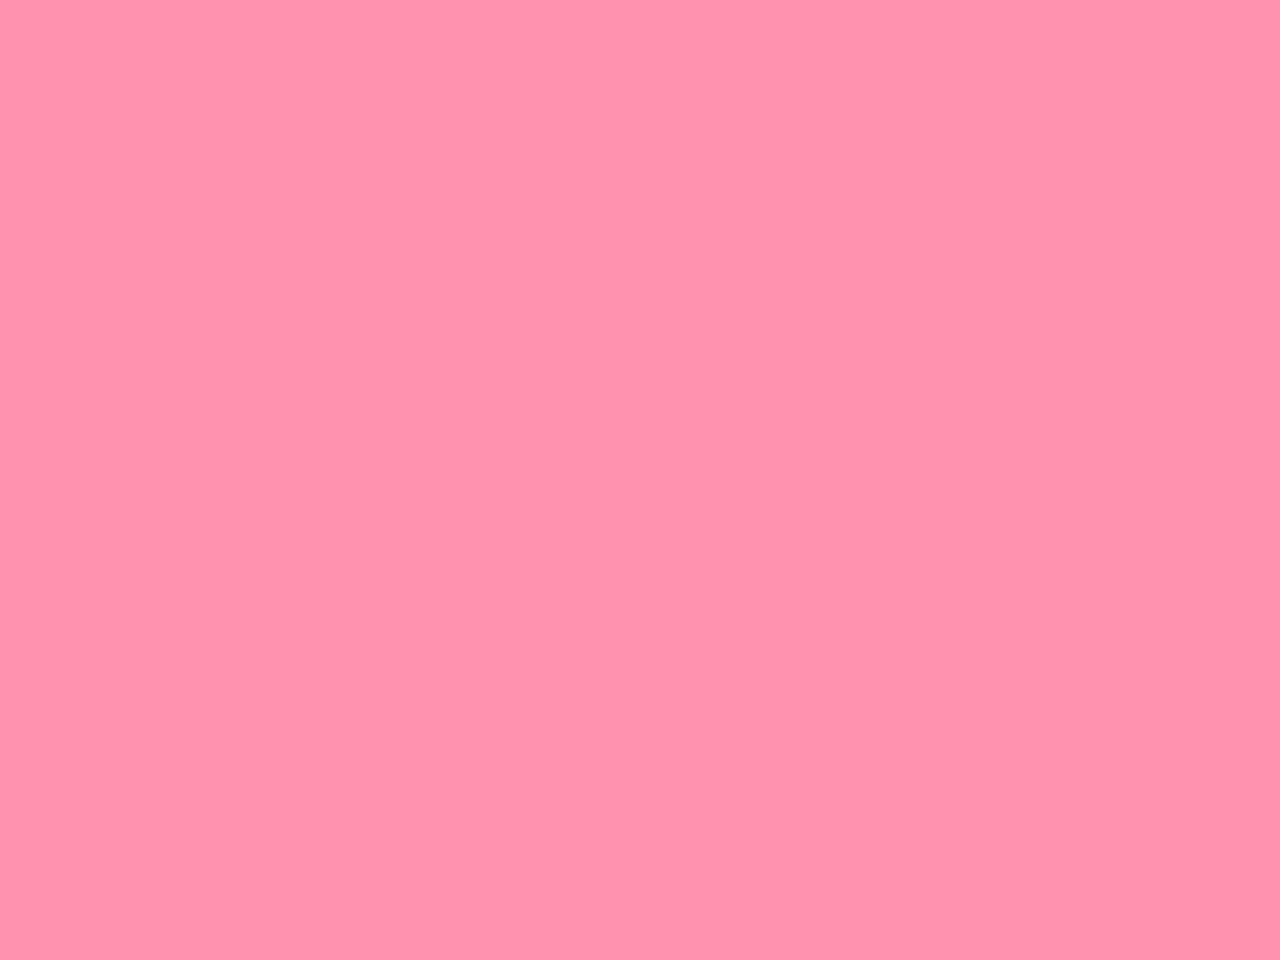 1280x960 Baker-Miller Pink Solid Color Background